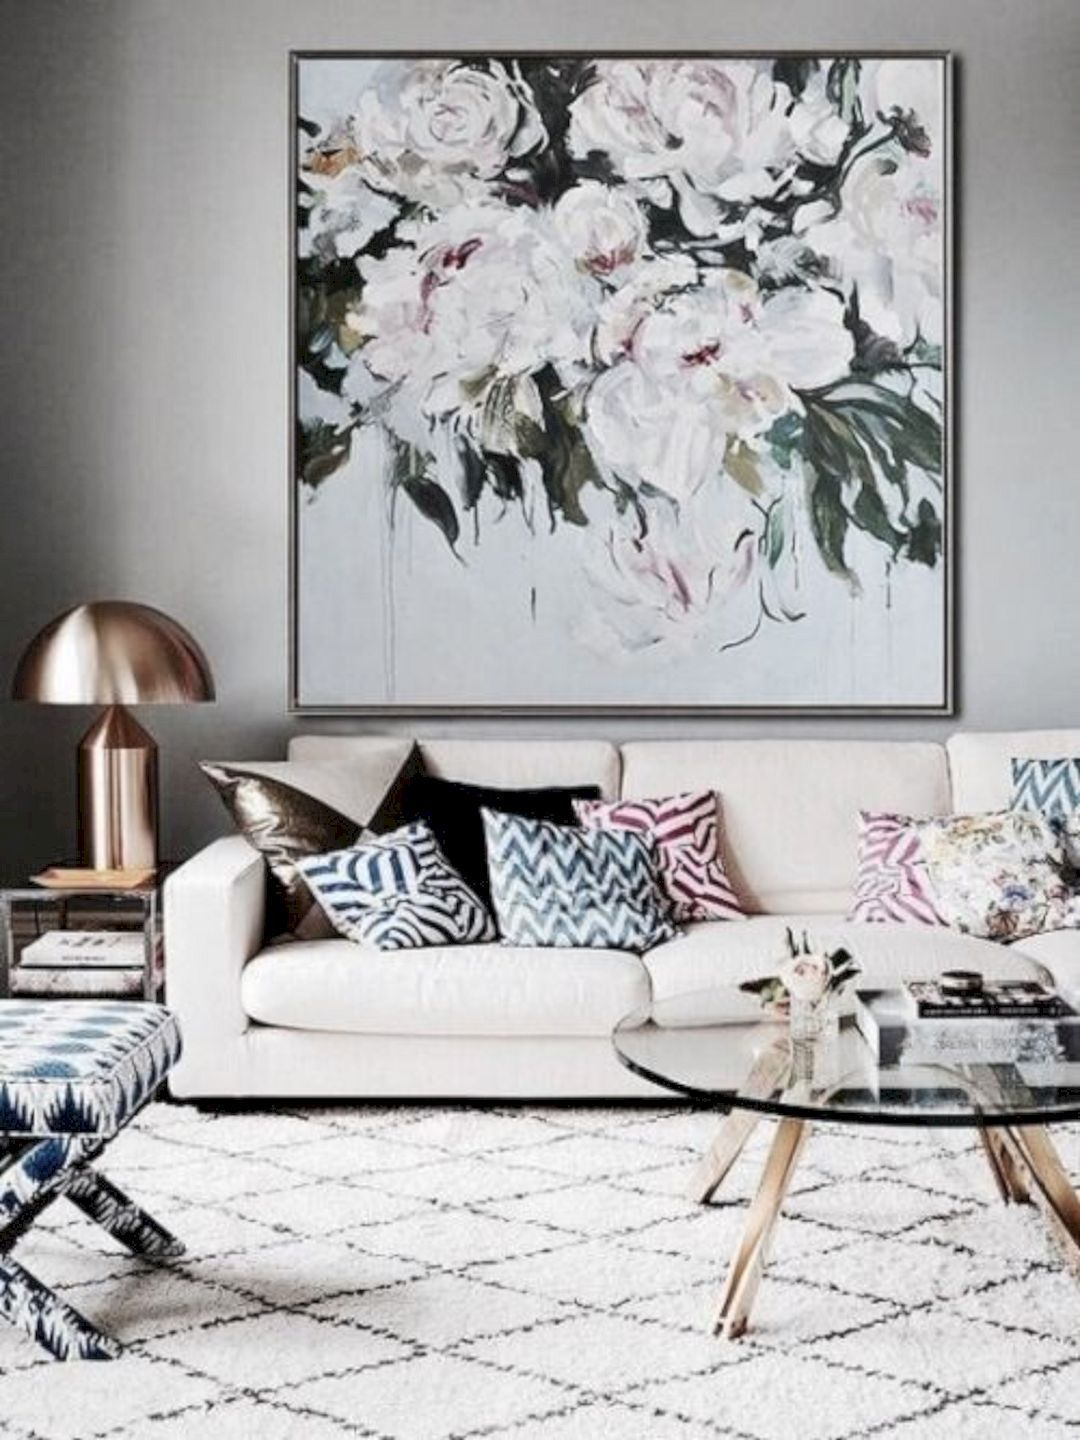 Superieur 15 Interior Design Ideas To Spruce Up Your Large Living Room Https://www